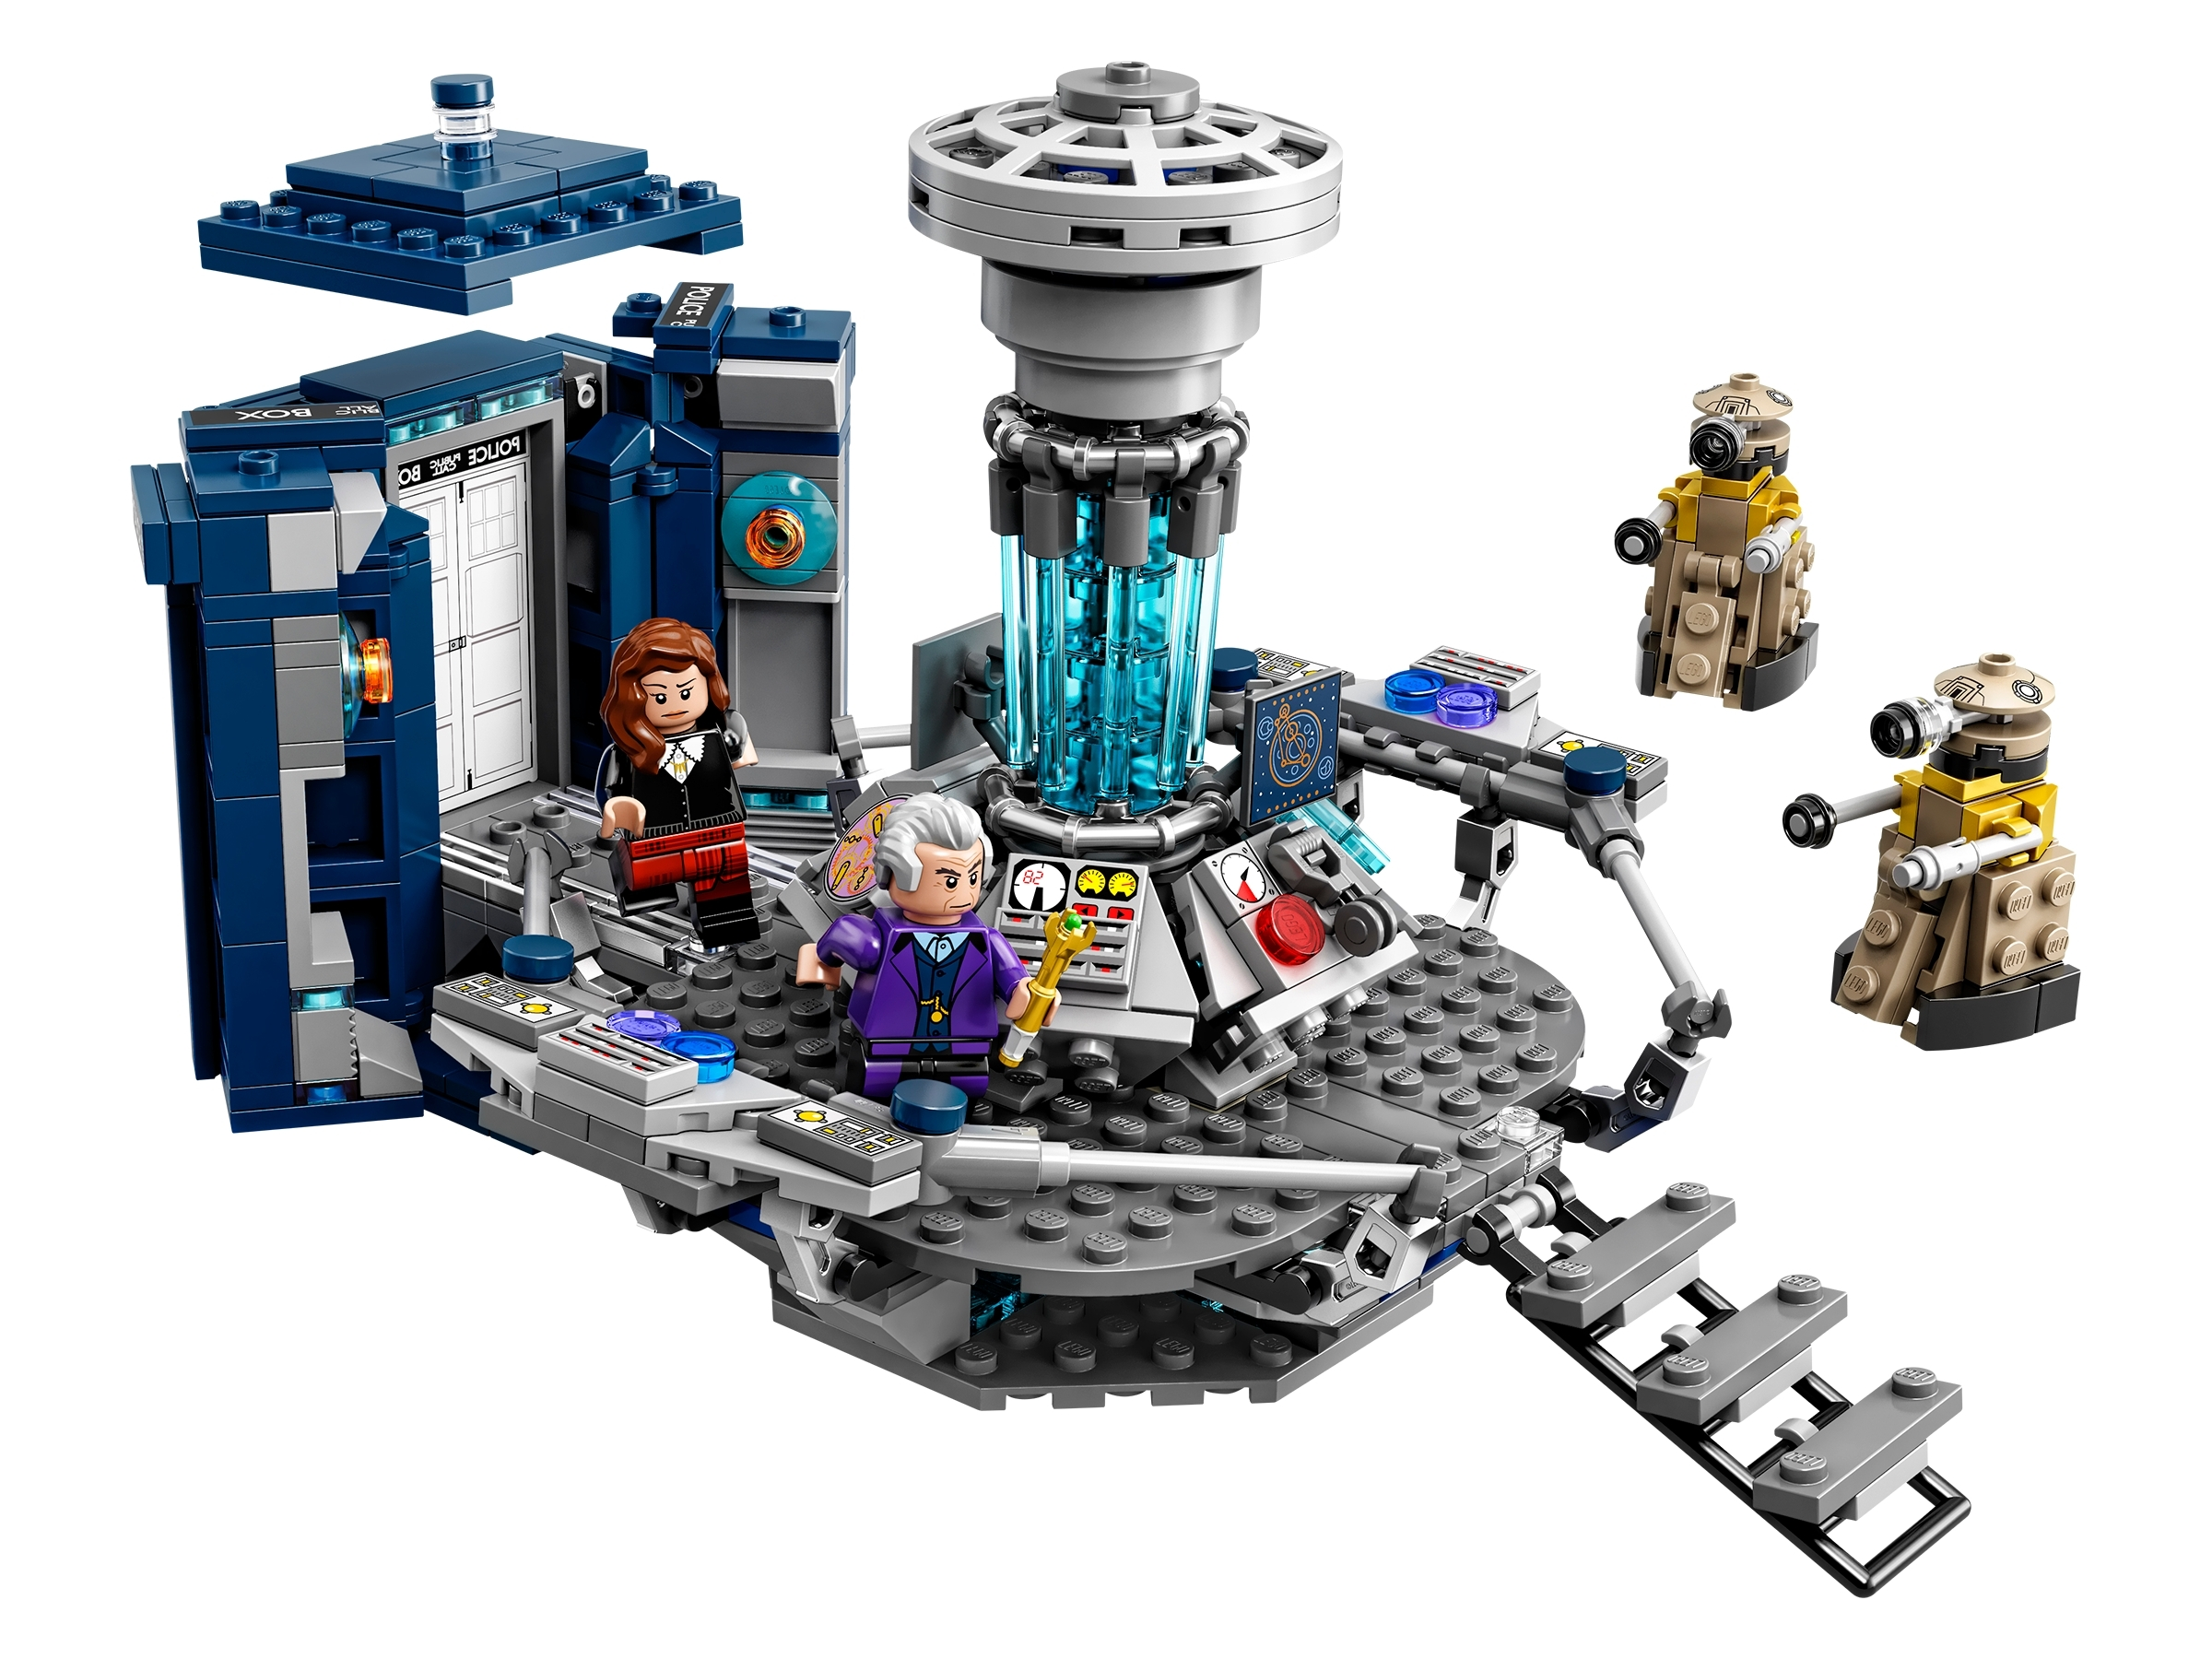 ~~LEGO IDEAS 21304 DOCTOR WHO INSTRUCTION MANUAL ONLY